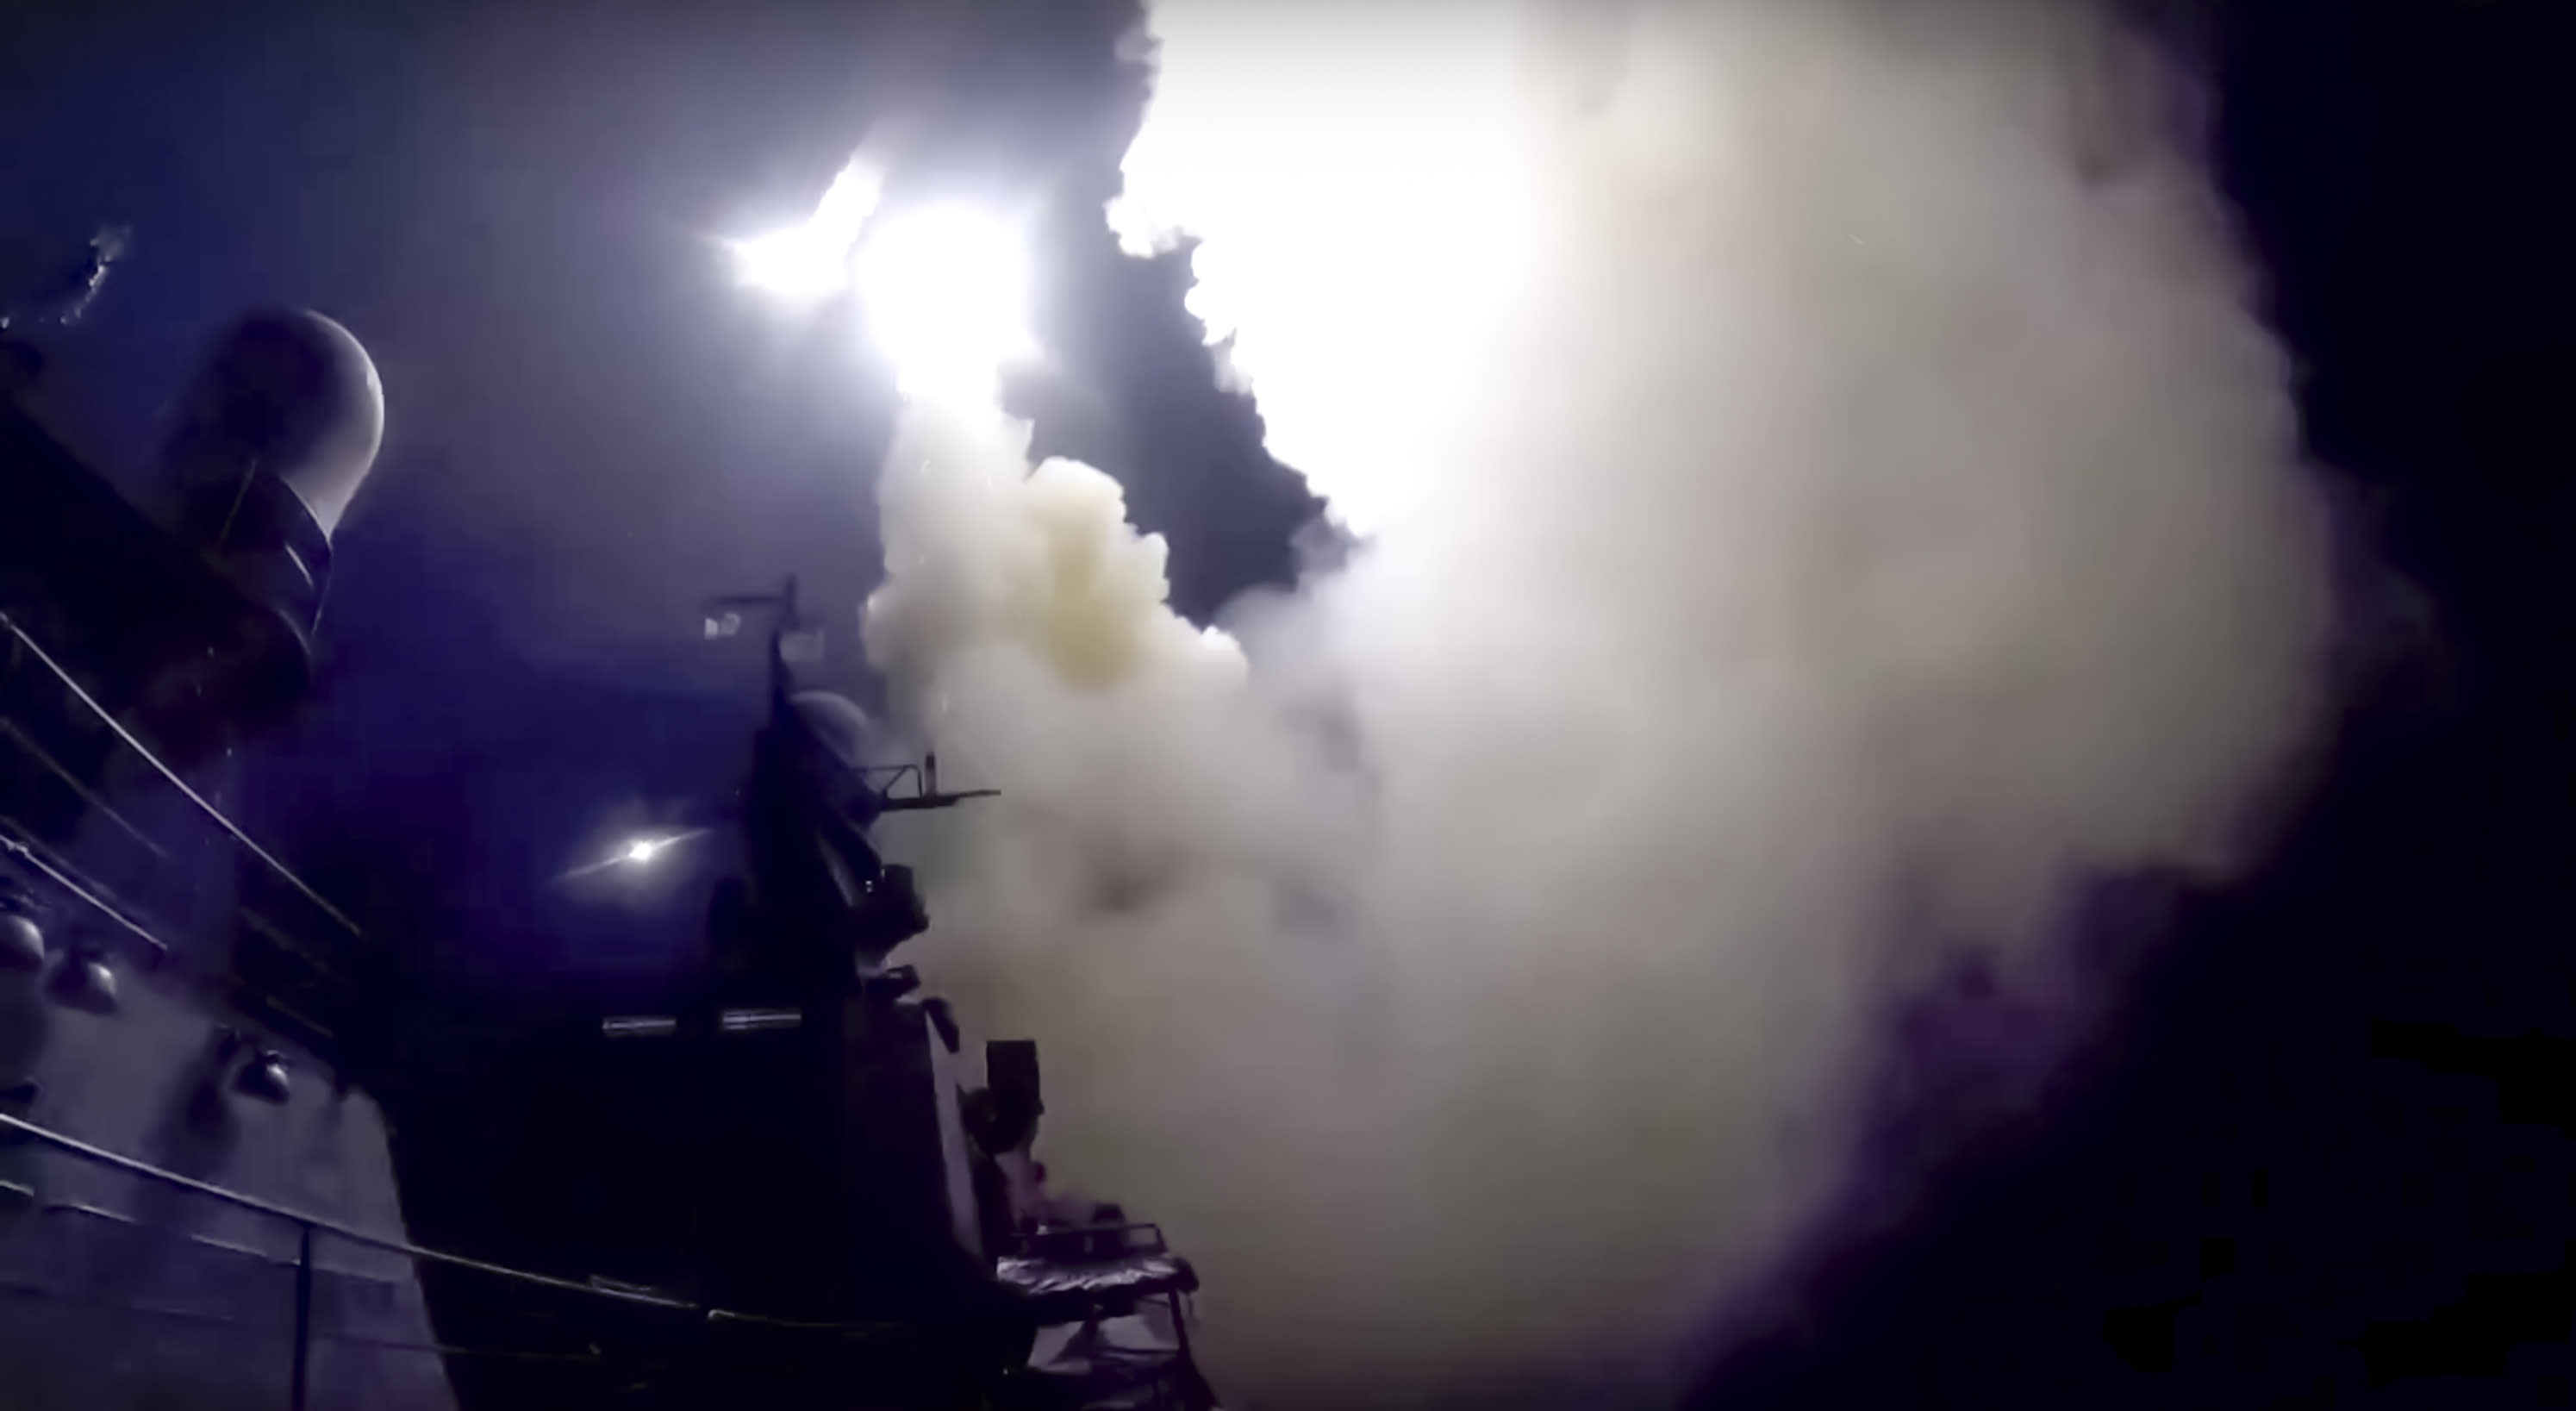 Syrian general lauds Russian strikes amid ground offensive